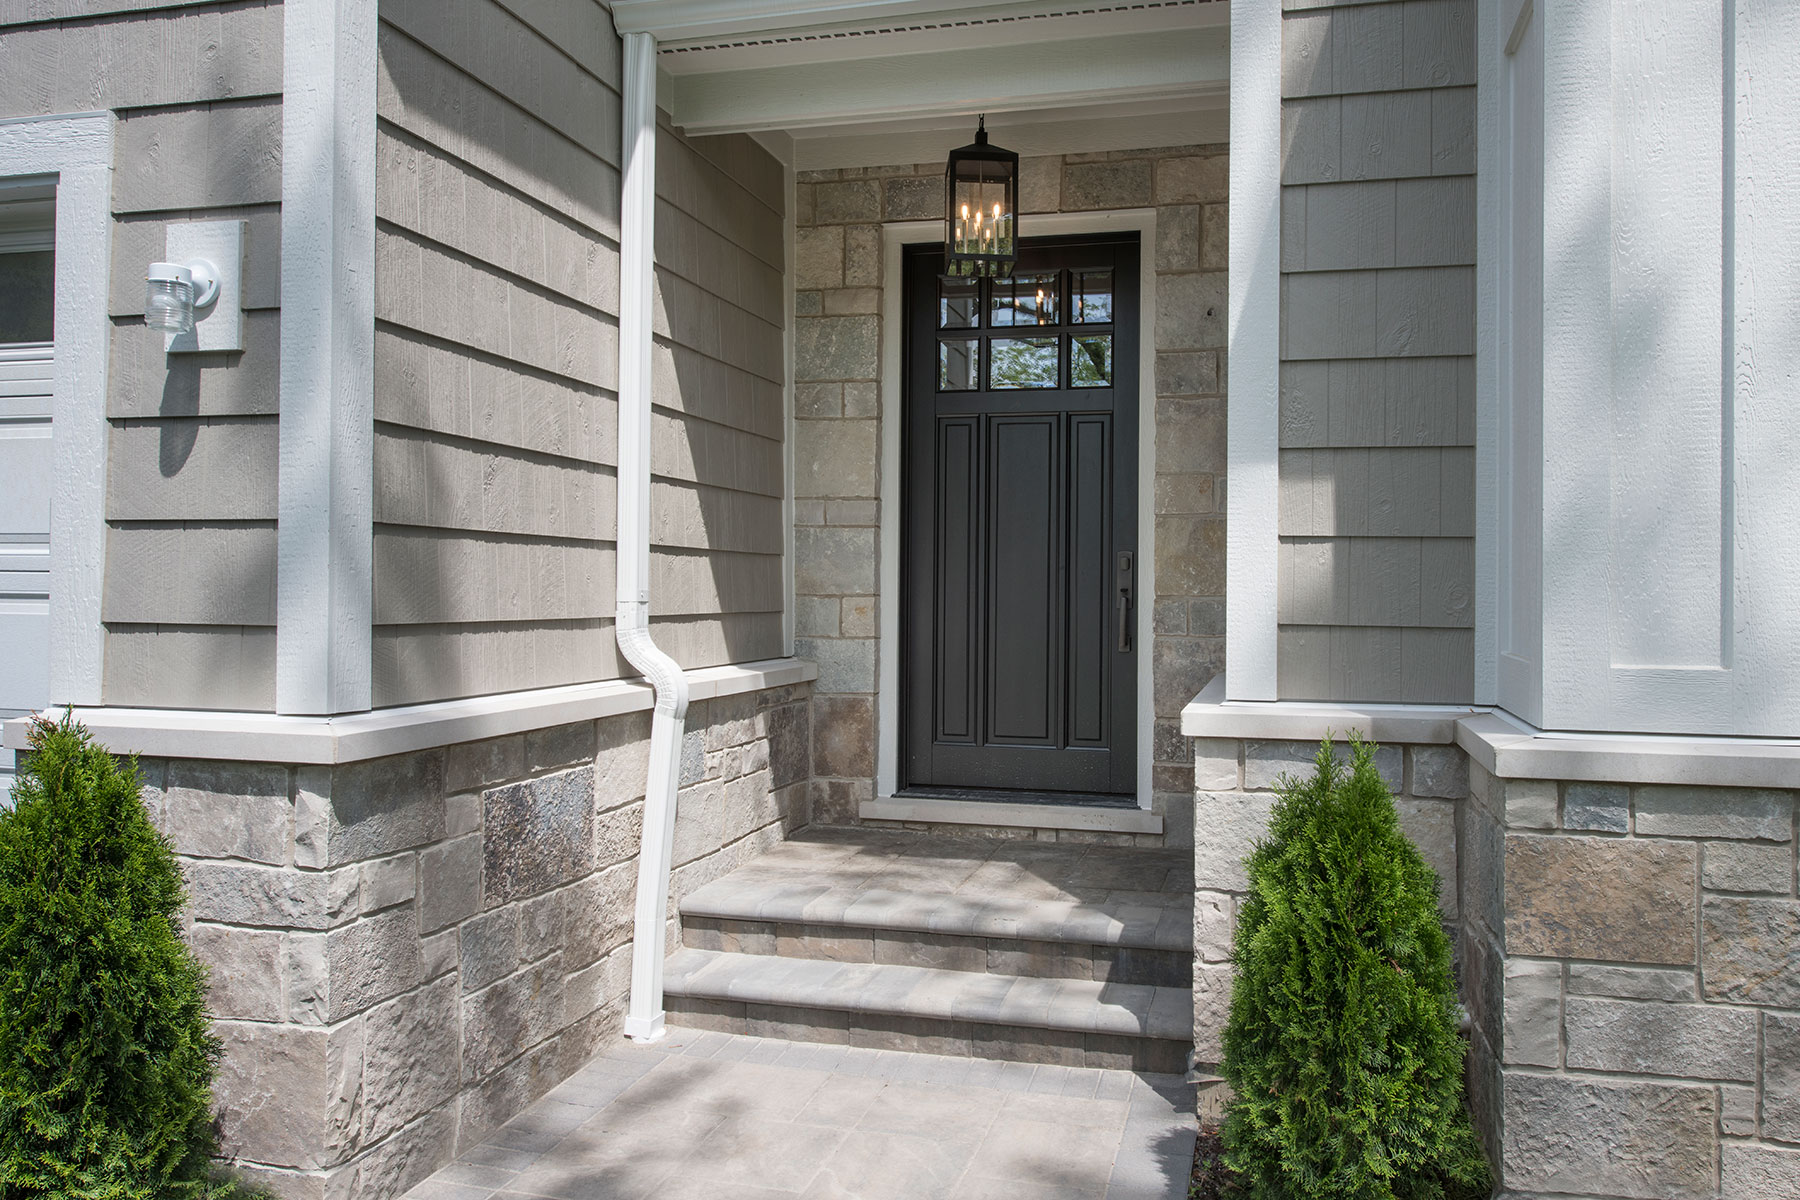 Wood Front Entry Doors in-Stock | classic front entry door, with clear glass, dark finish DB-311PW 2SL - Glenview Doors - Custom Doors in Chicago